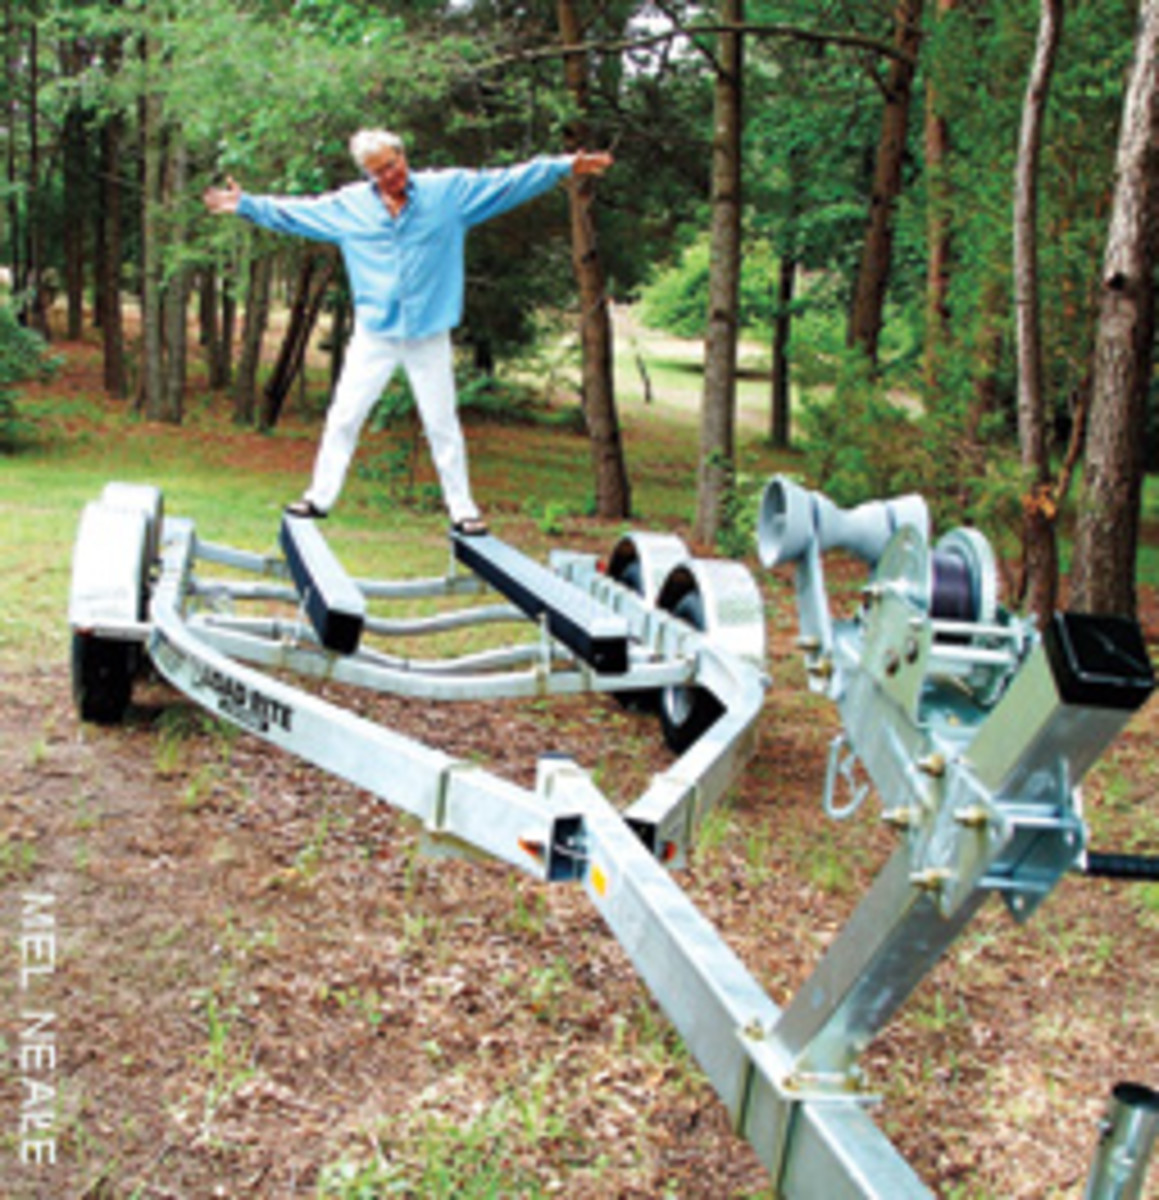 Tom was liberated when he discovered bunk boards. No more trailer rollers to replace!